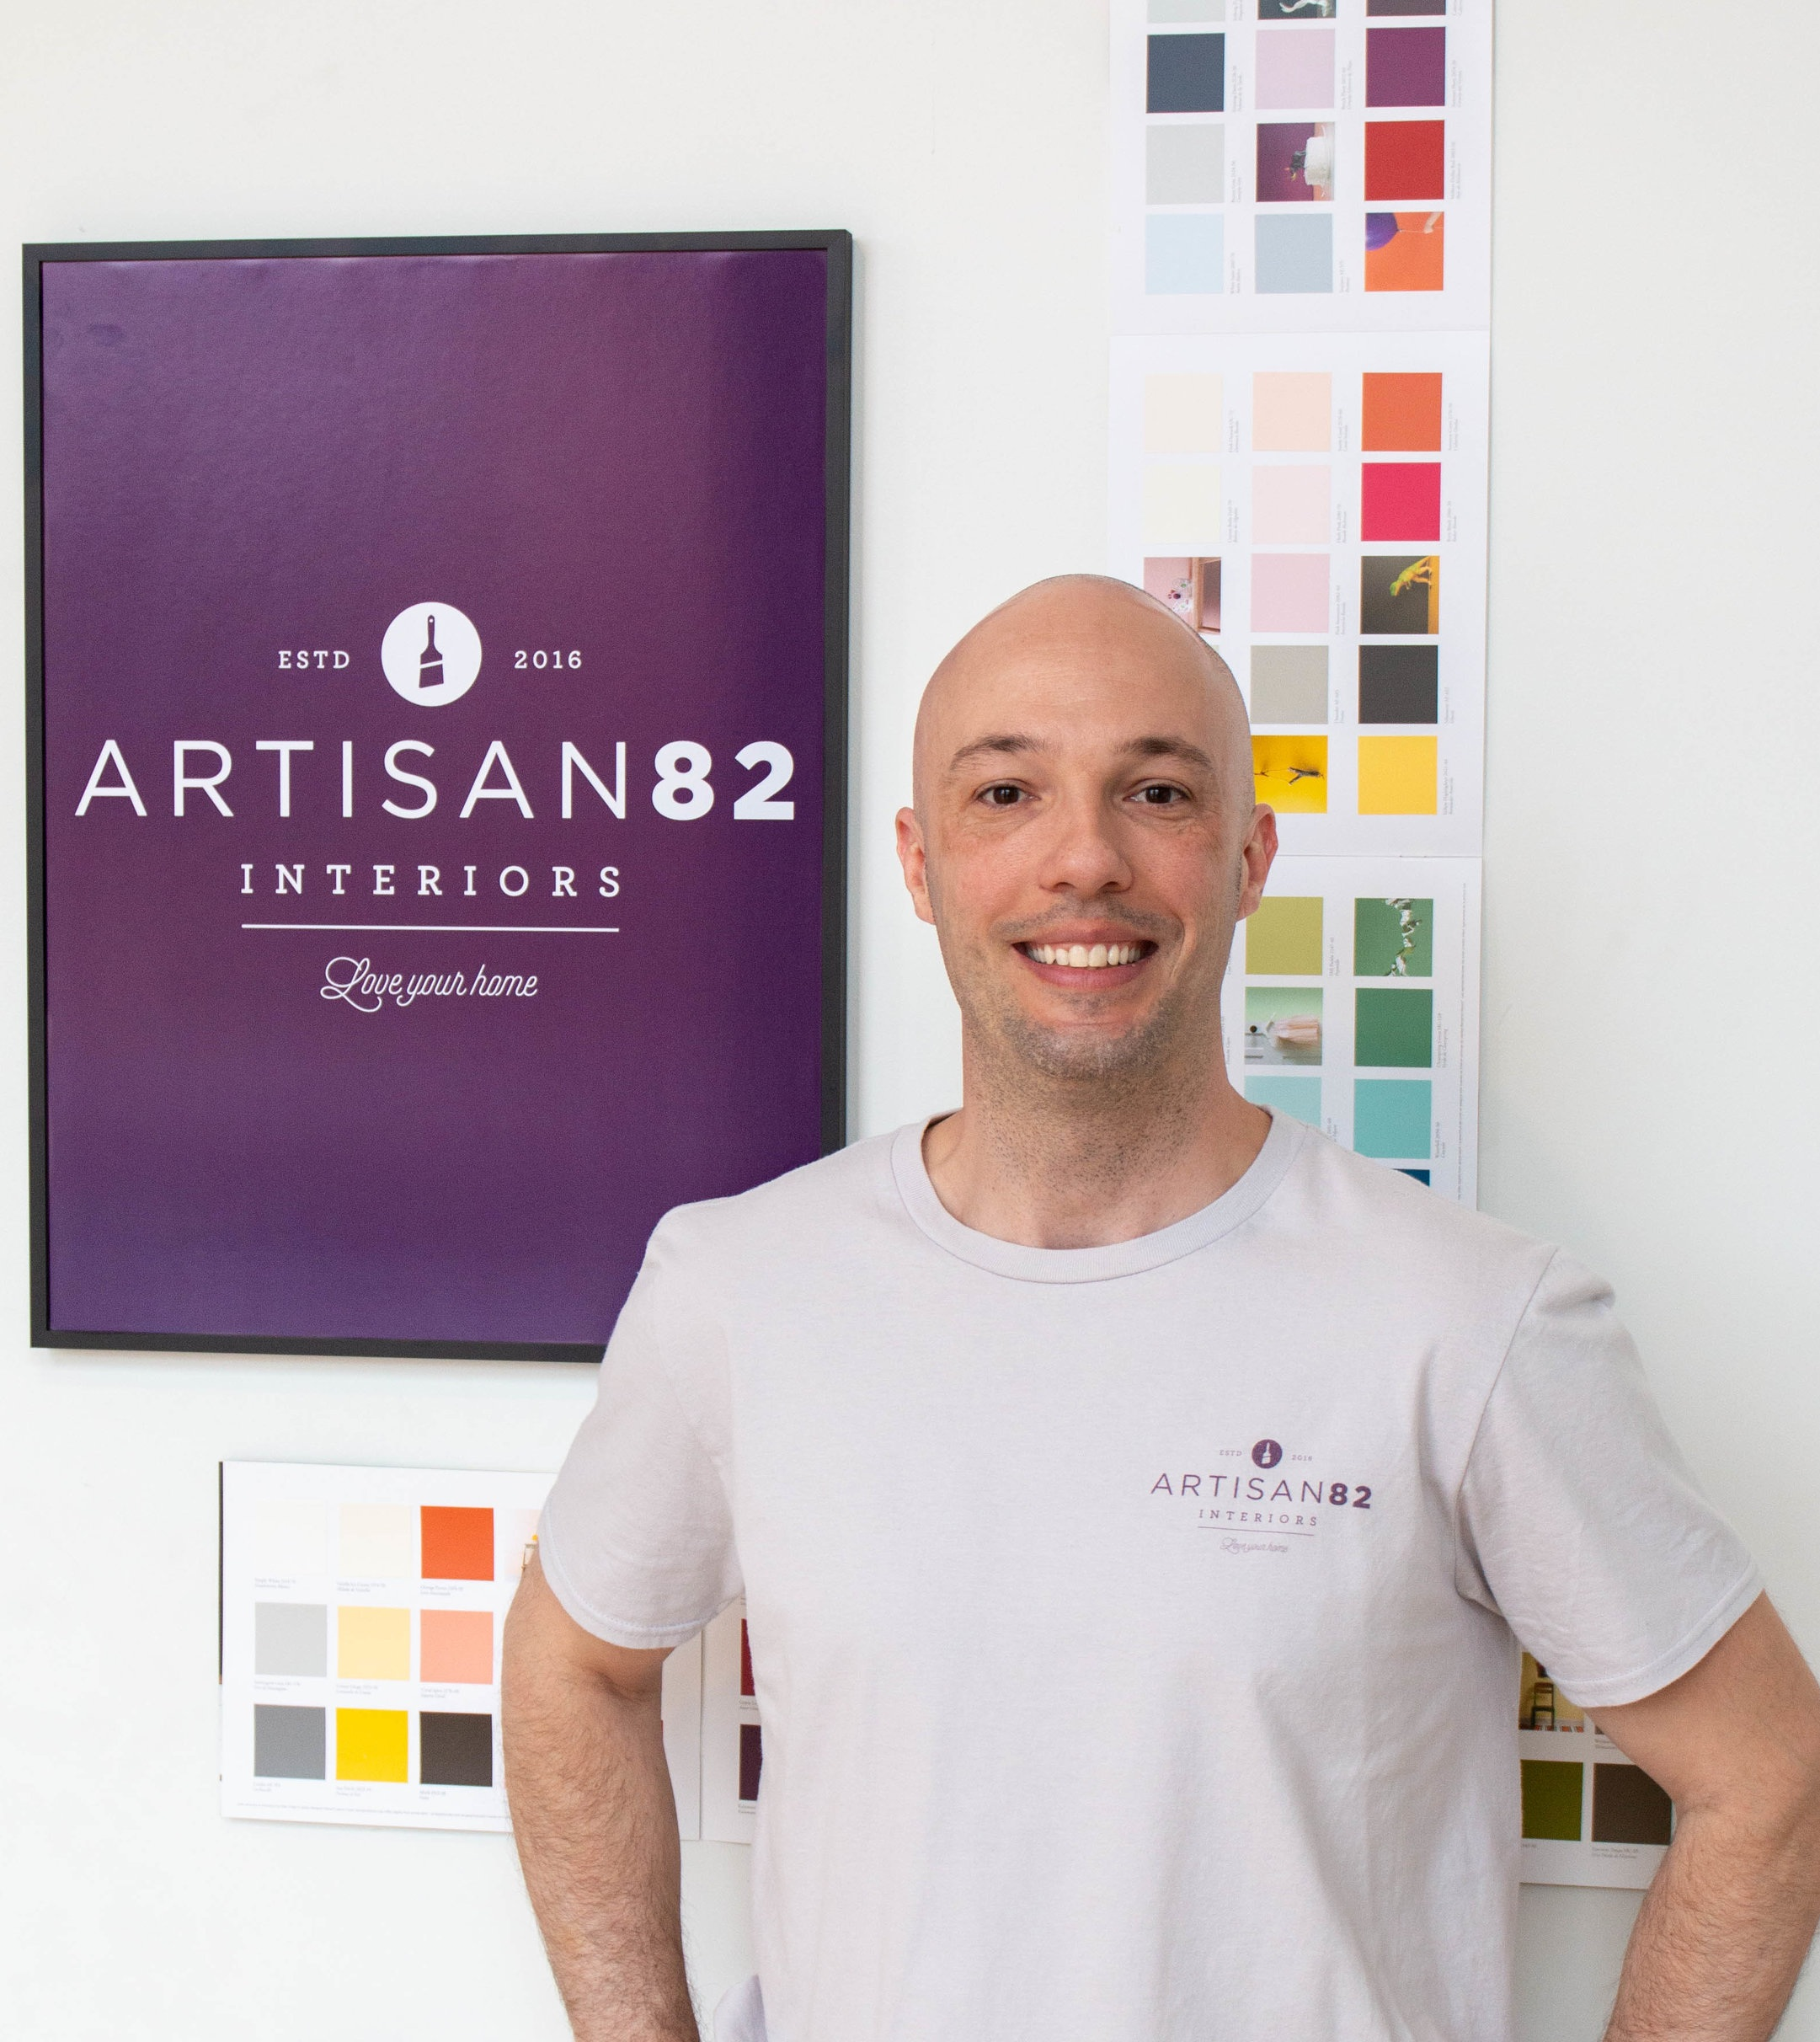 The Artisan82 Story - Dan developed a strong work ethic in his teenage years, thanks to summers spent working alongside his dad, a small business owner and professional painter. In his 20s, Dan served in the US Army and attended Saginaw Valley State. Those experiences taught him how to be an open-minded, compassionate leader — skills he would later use as an educator in Michigan's urban high schools. Dan is passionate about best in class project experience for homeowners, making the world a better place, and — of course — excellence in craftsmanship. His heart is filled with joy every time he's able to help clients create a legacy in their homes they'll love for years to come.